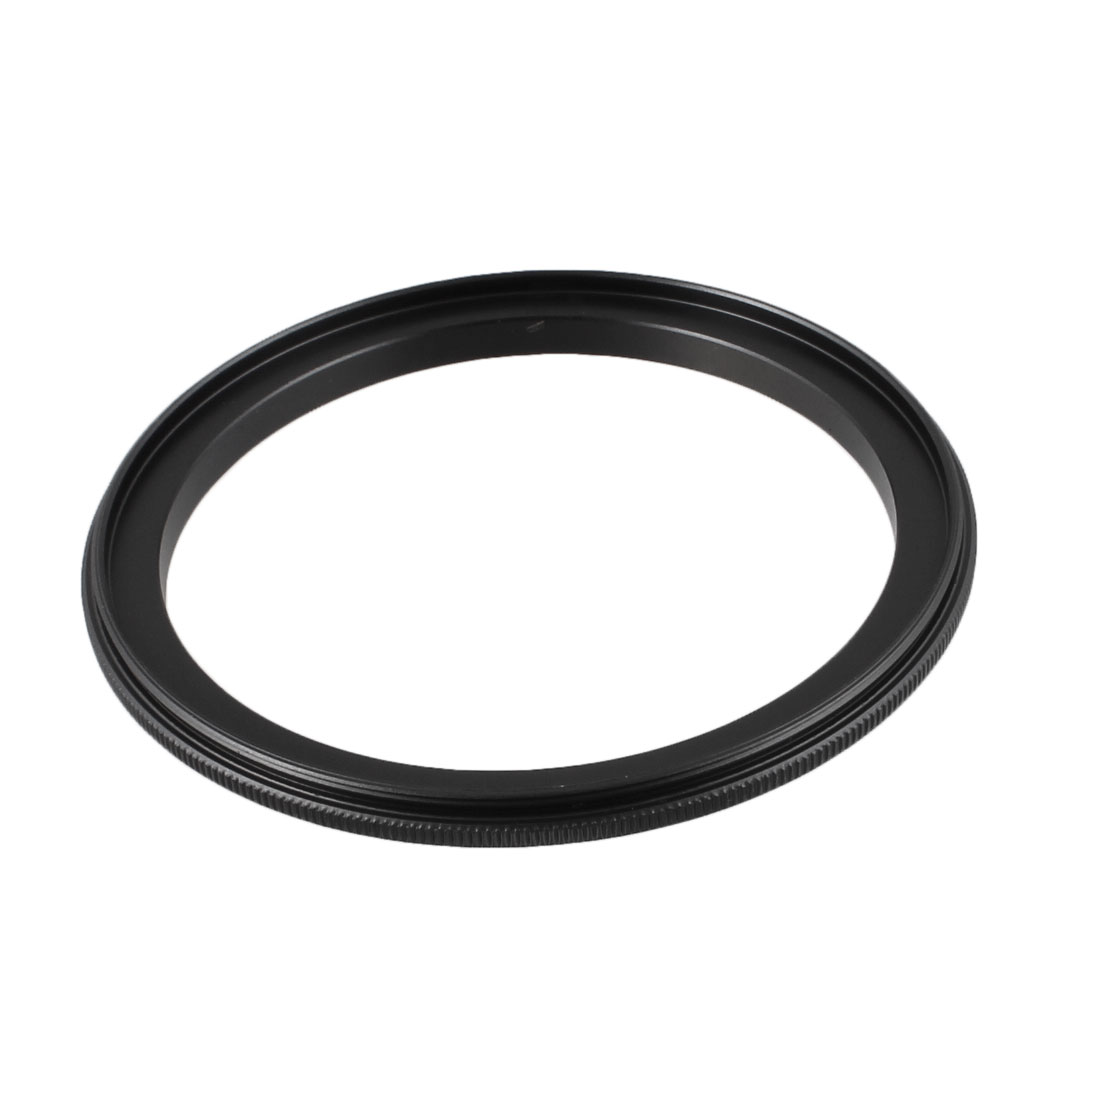 72mm-82mm 72mm to 82mm Male to Male Step up Ring Adapter Black for Camera